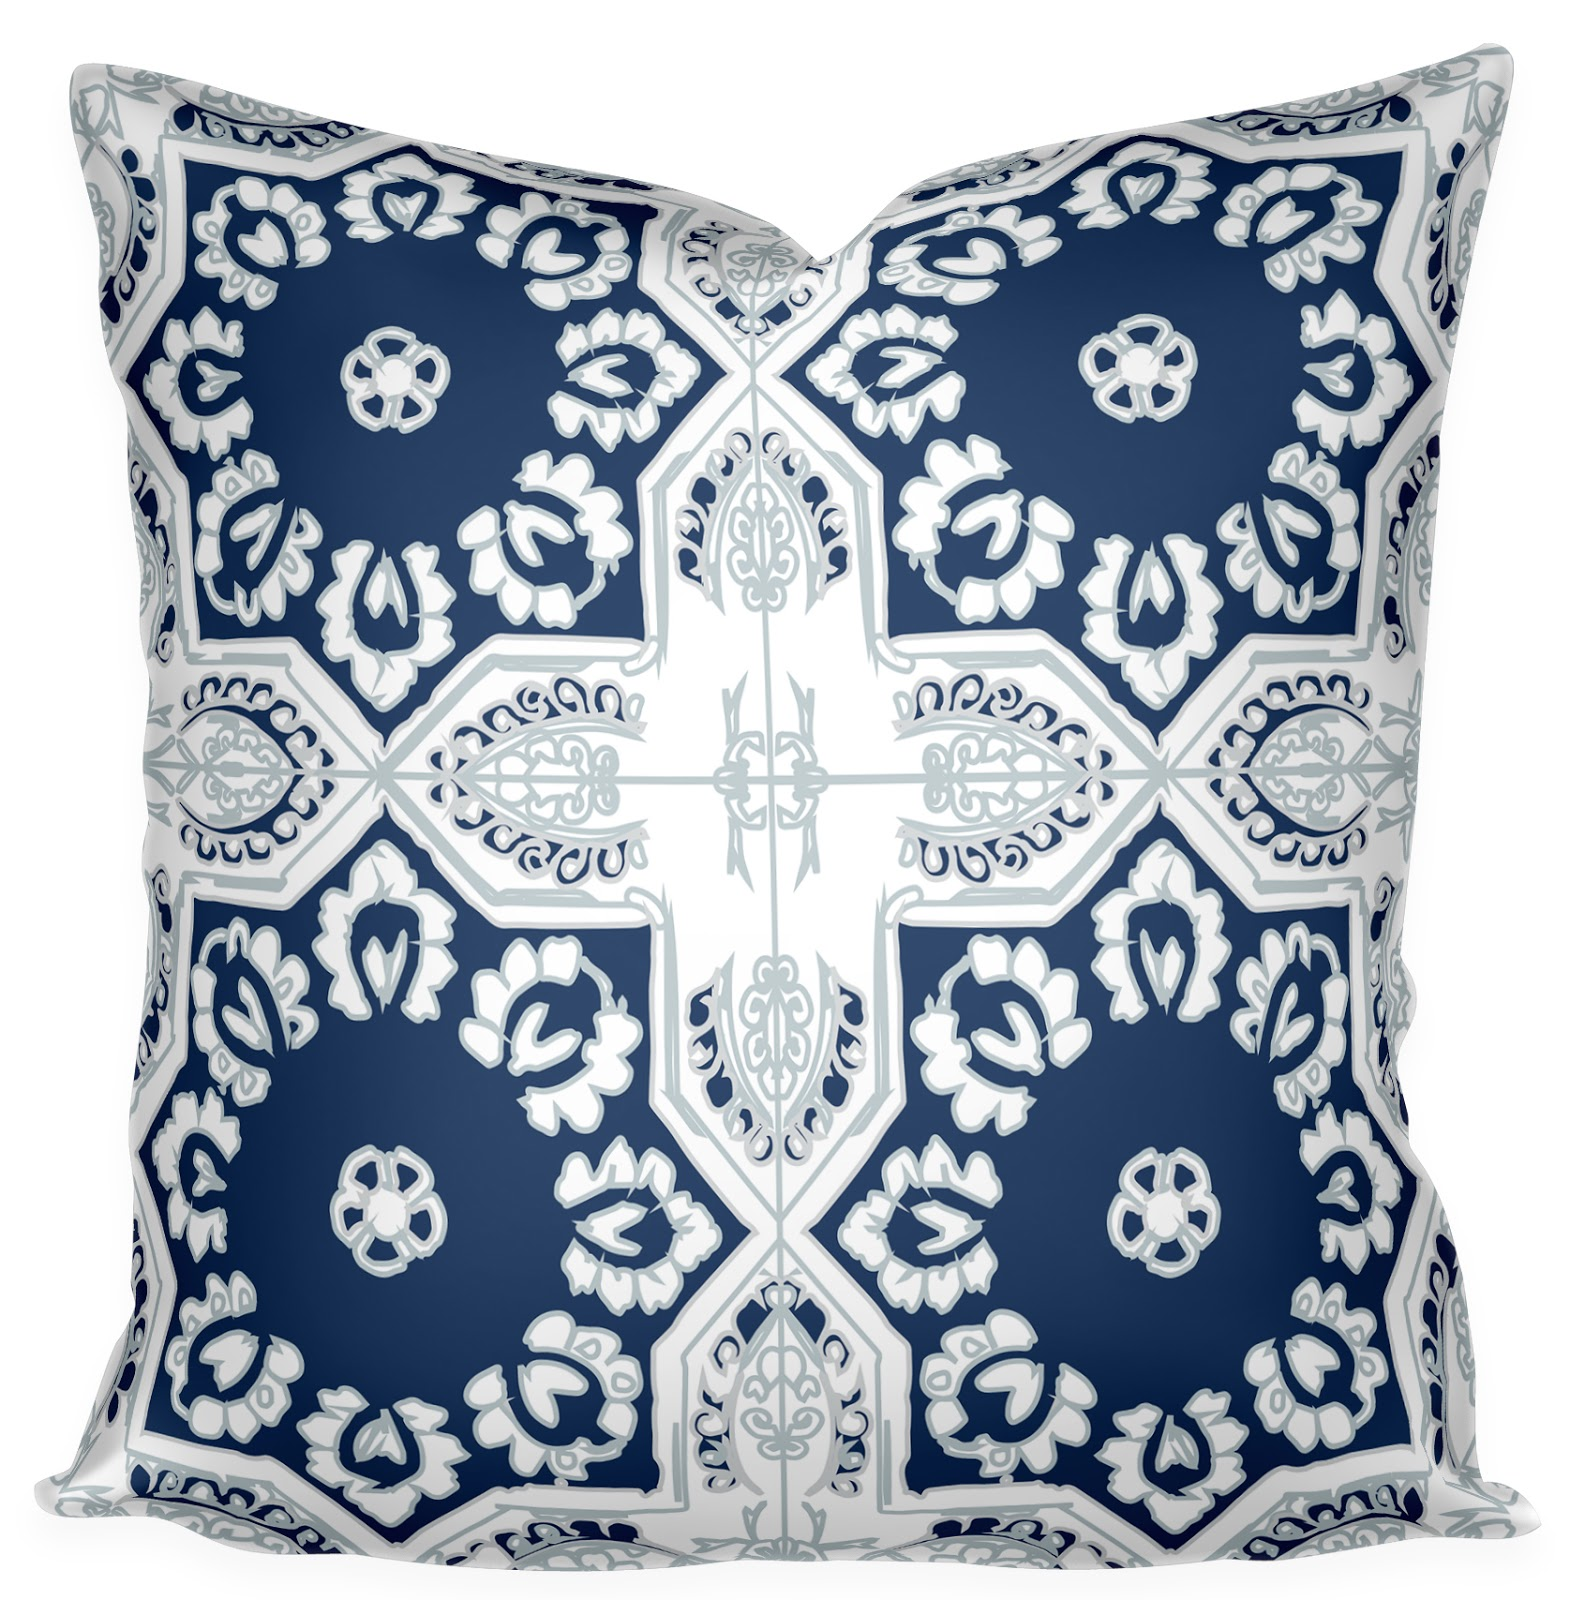 Decorative Pillow Trends 2016 : JLL DESIGN: New Pillows & Wallpaper